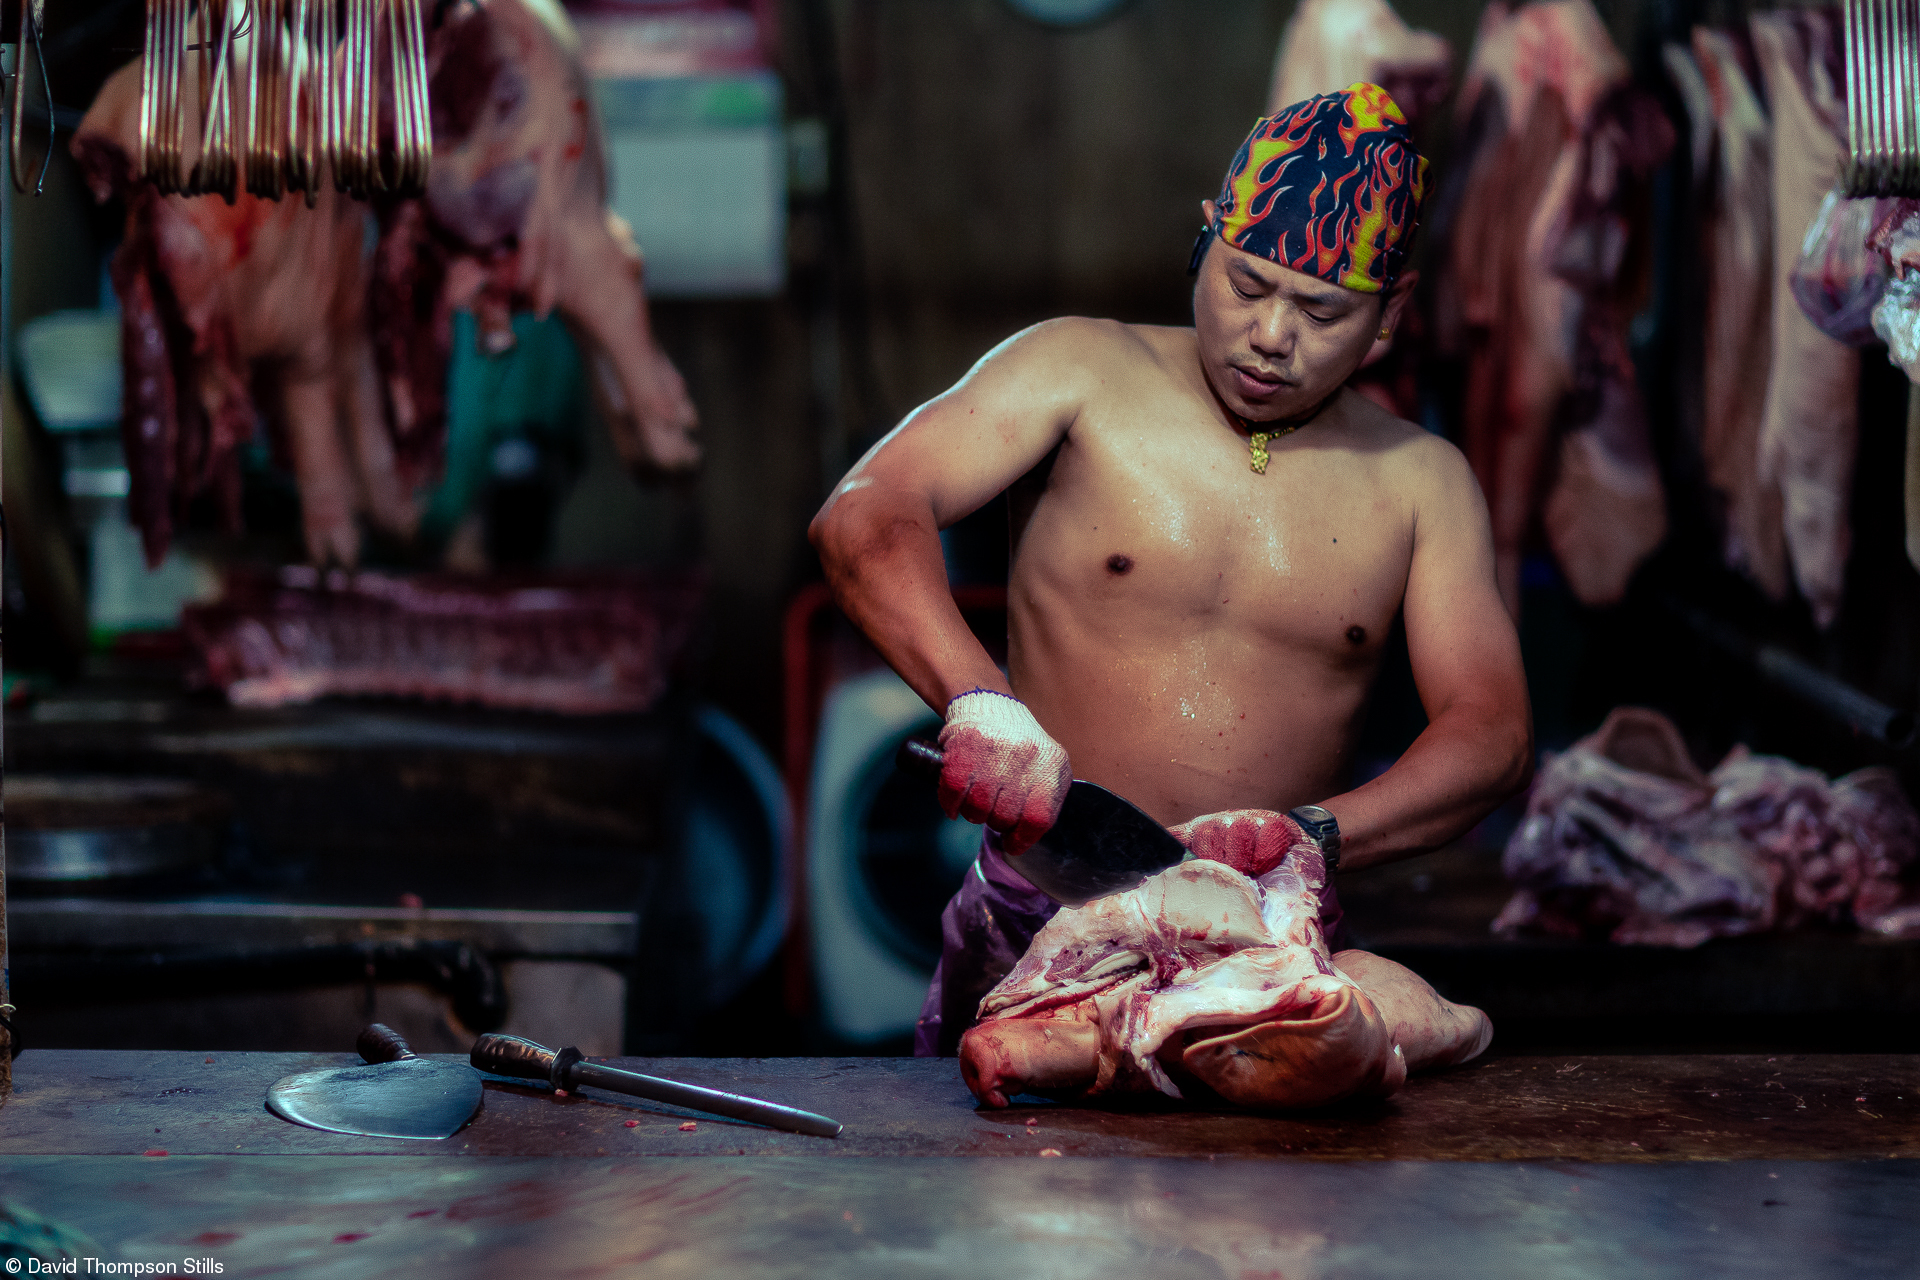 Food Photographer of the Year the Philip Harben Award for Food in Action© David Thompson, Taiwan